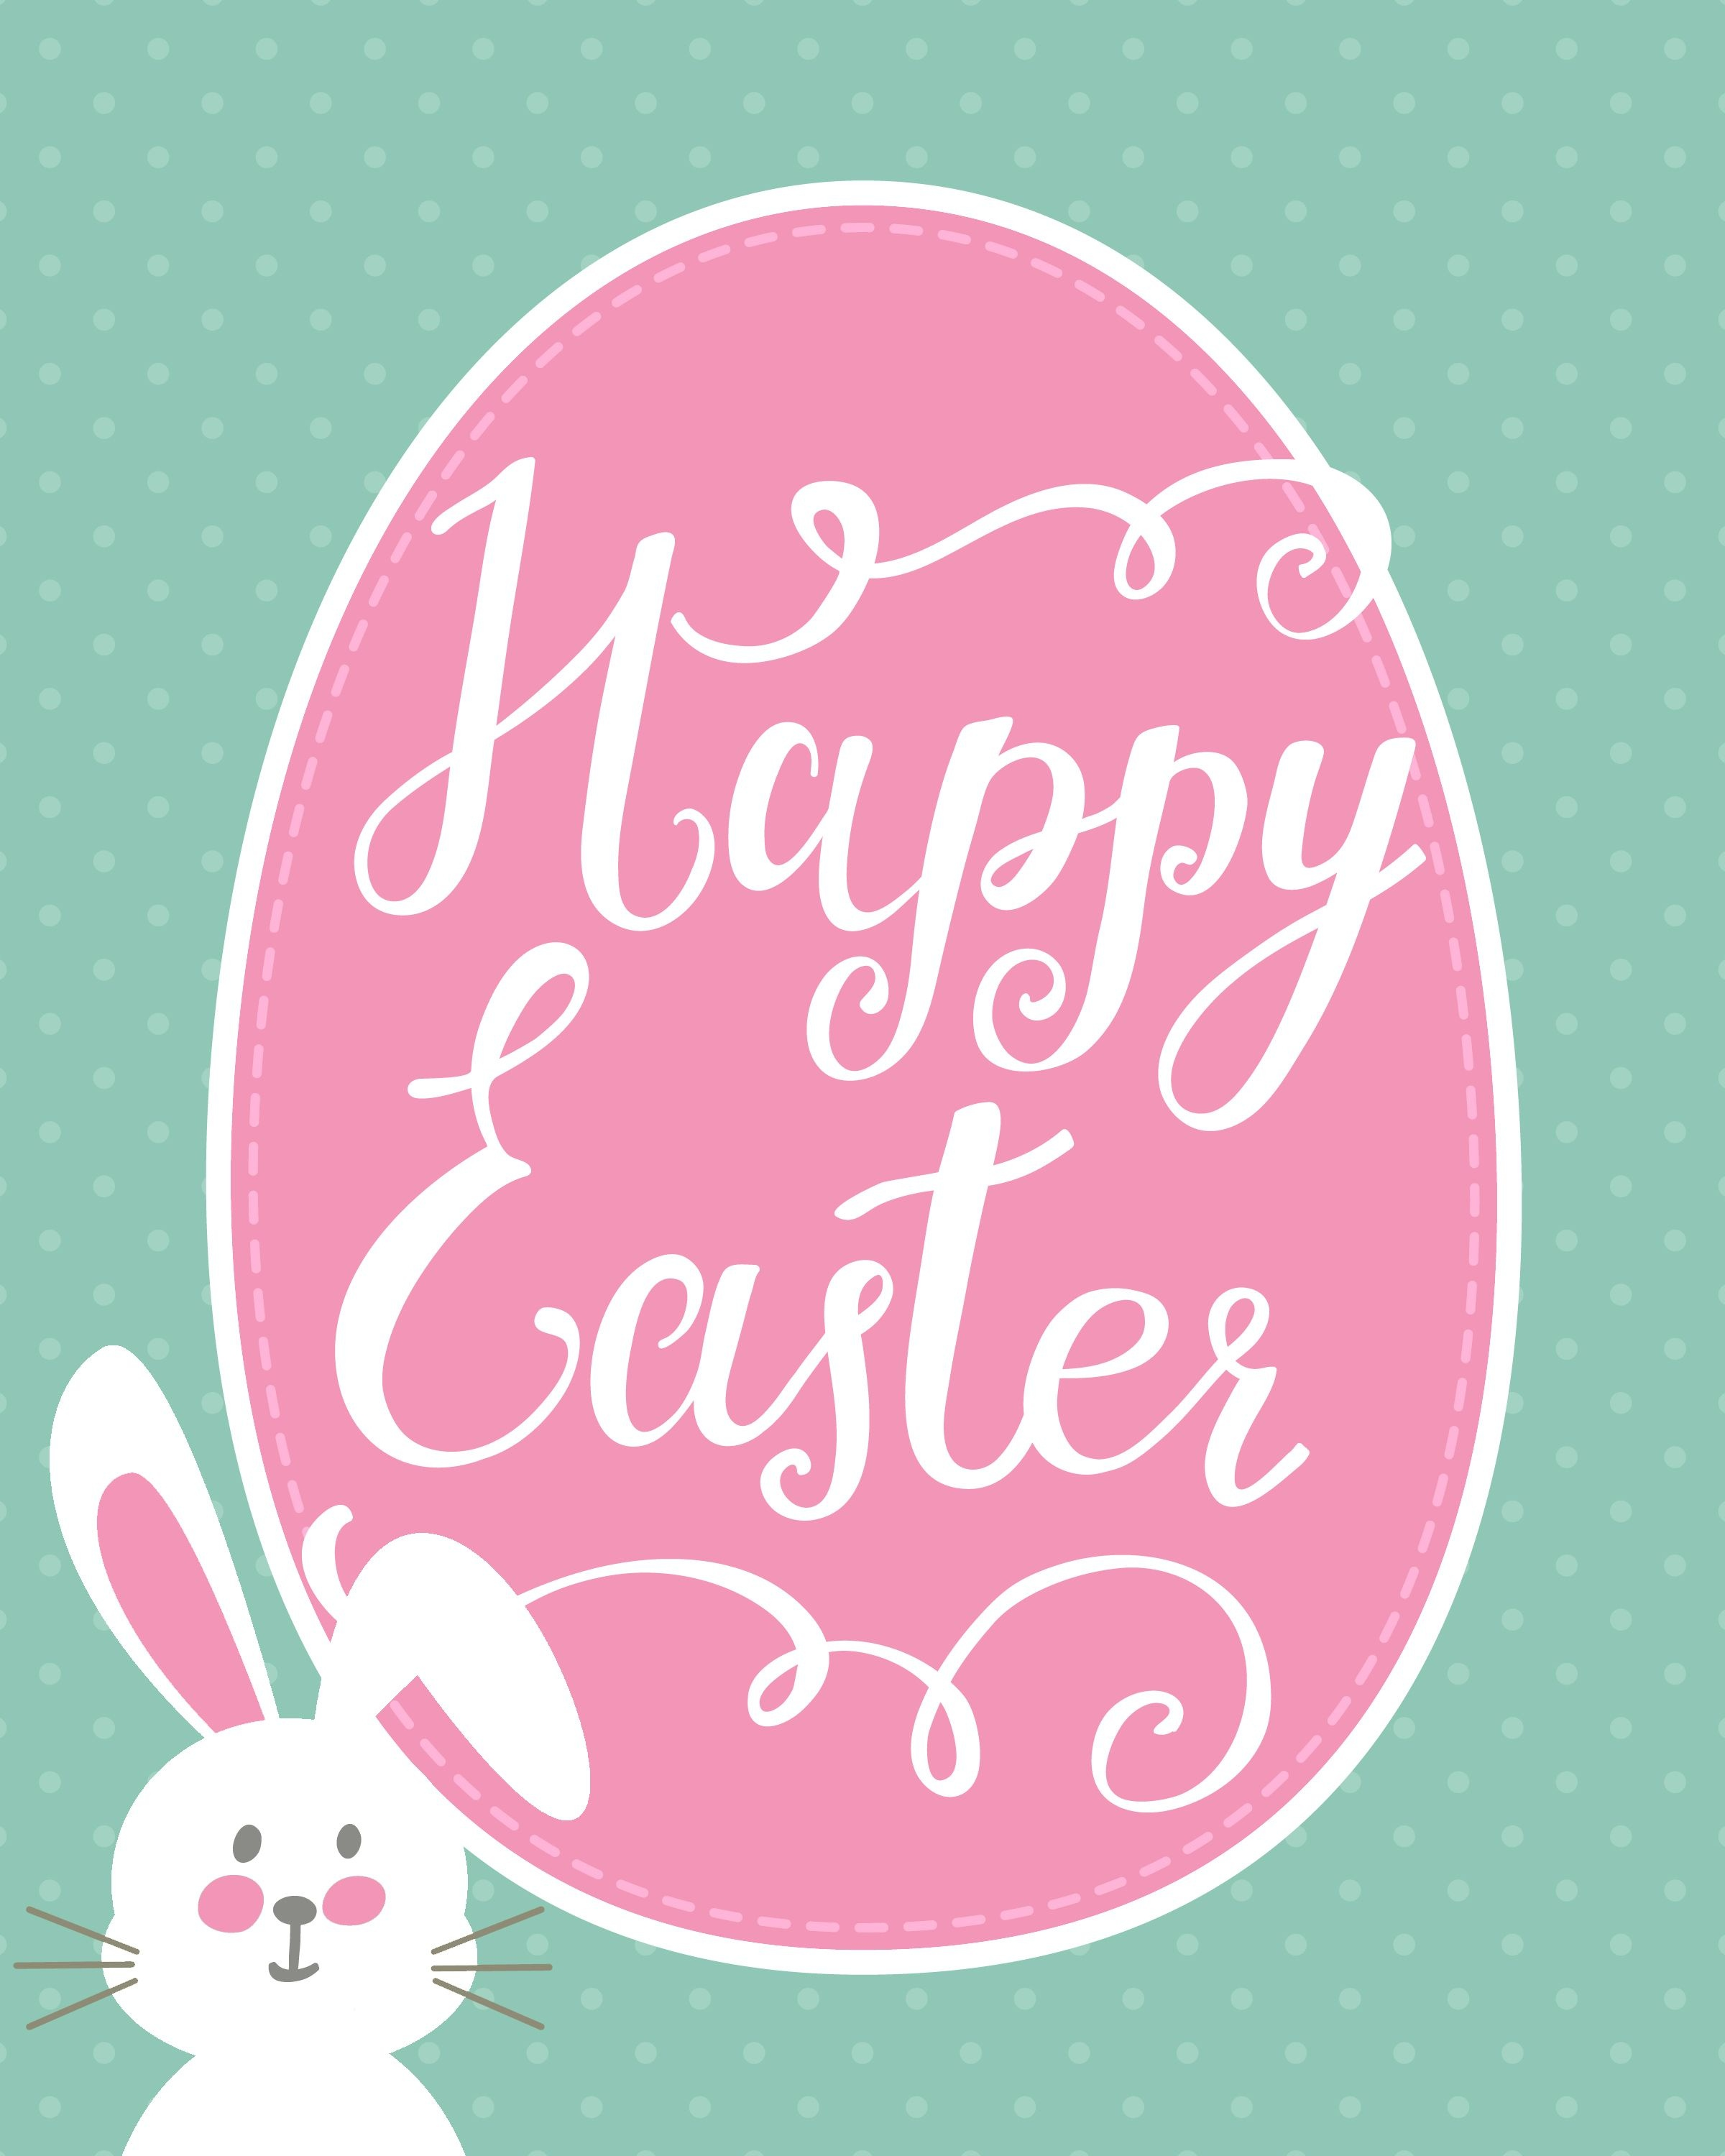 Happy Easter Bunny Printable | Holidays - Easter | Happy Easter - Printable Easter Greeting Cards Free